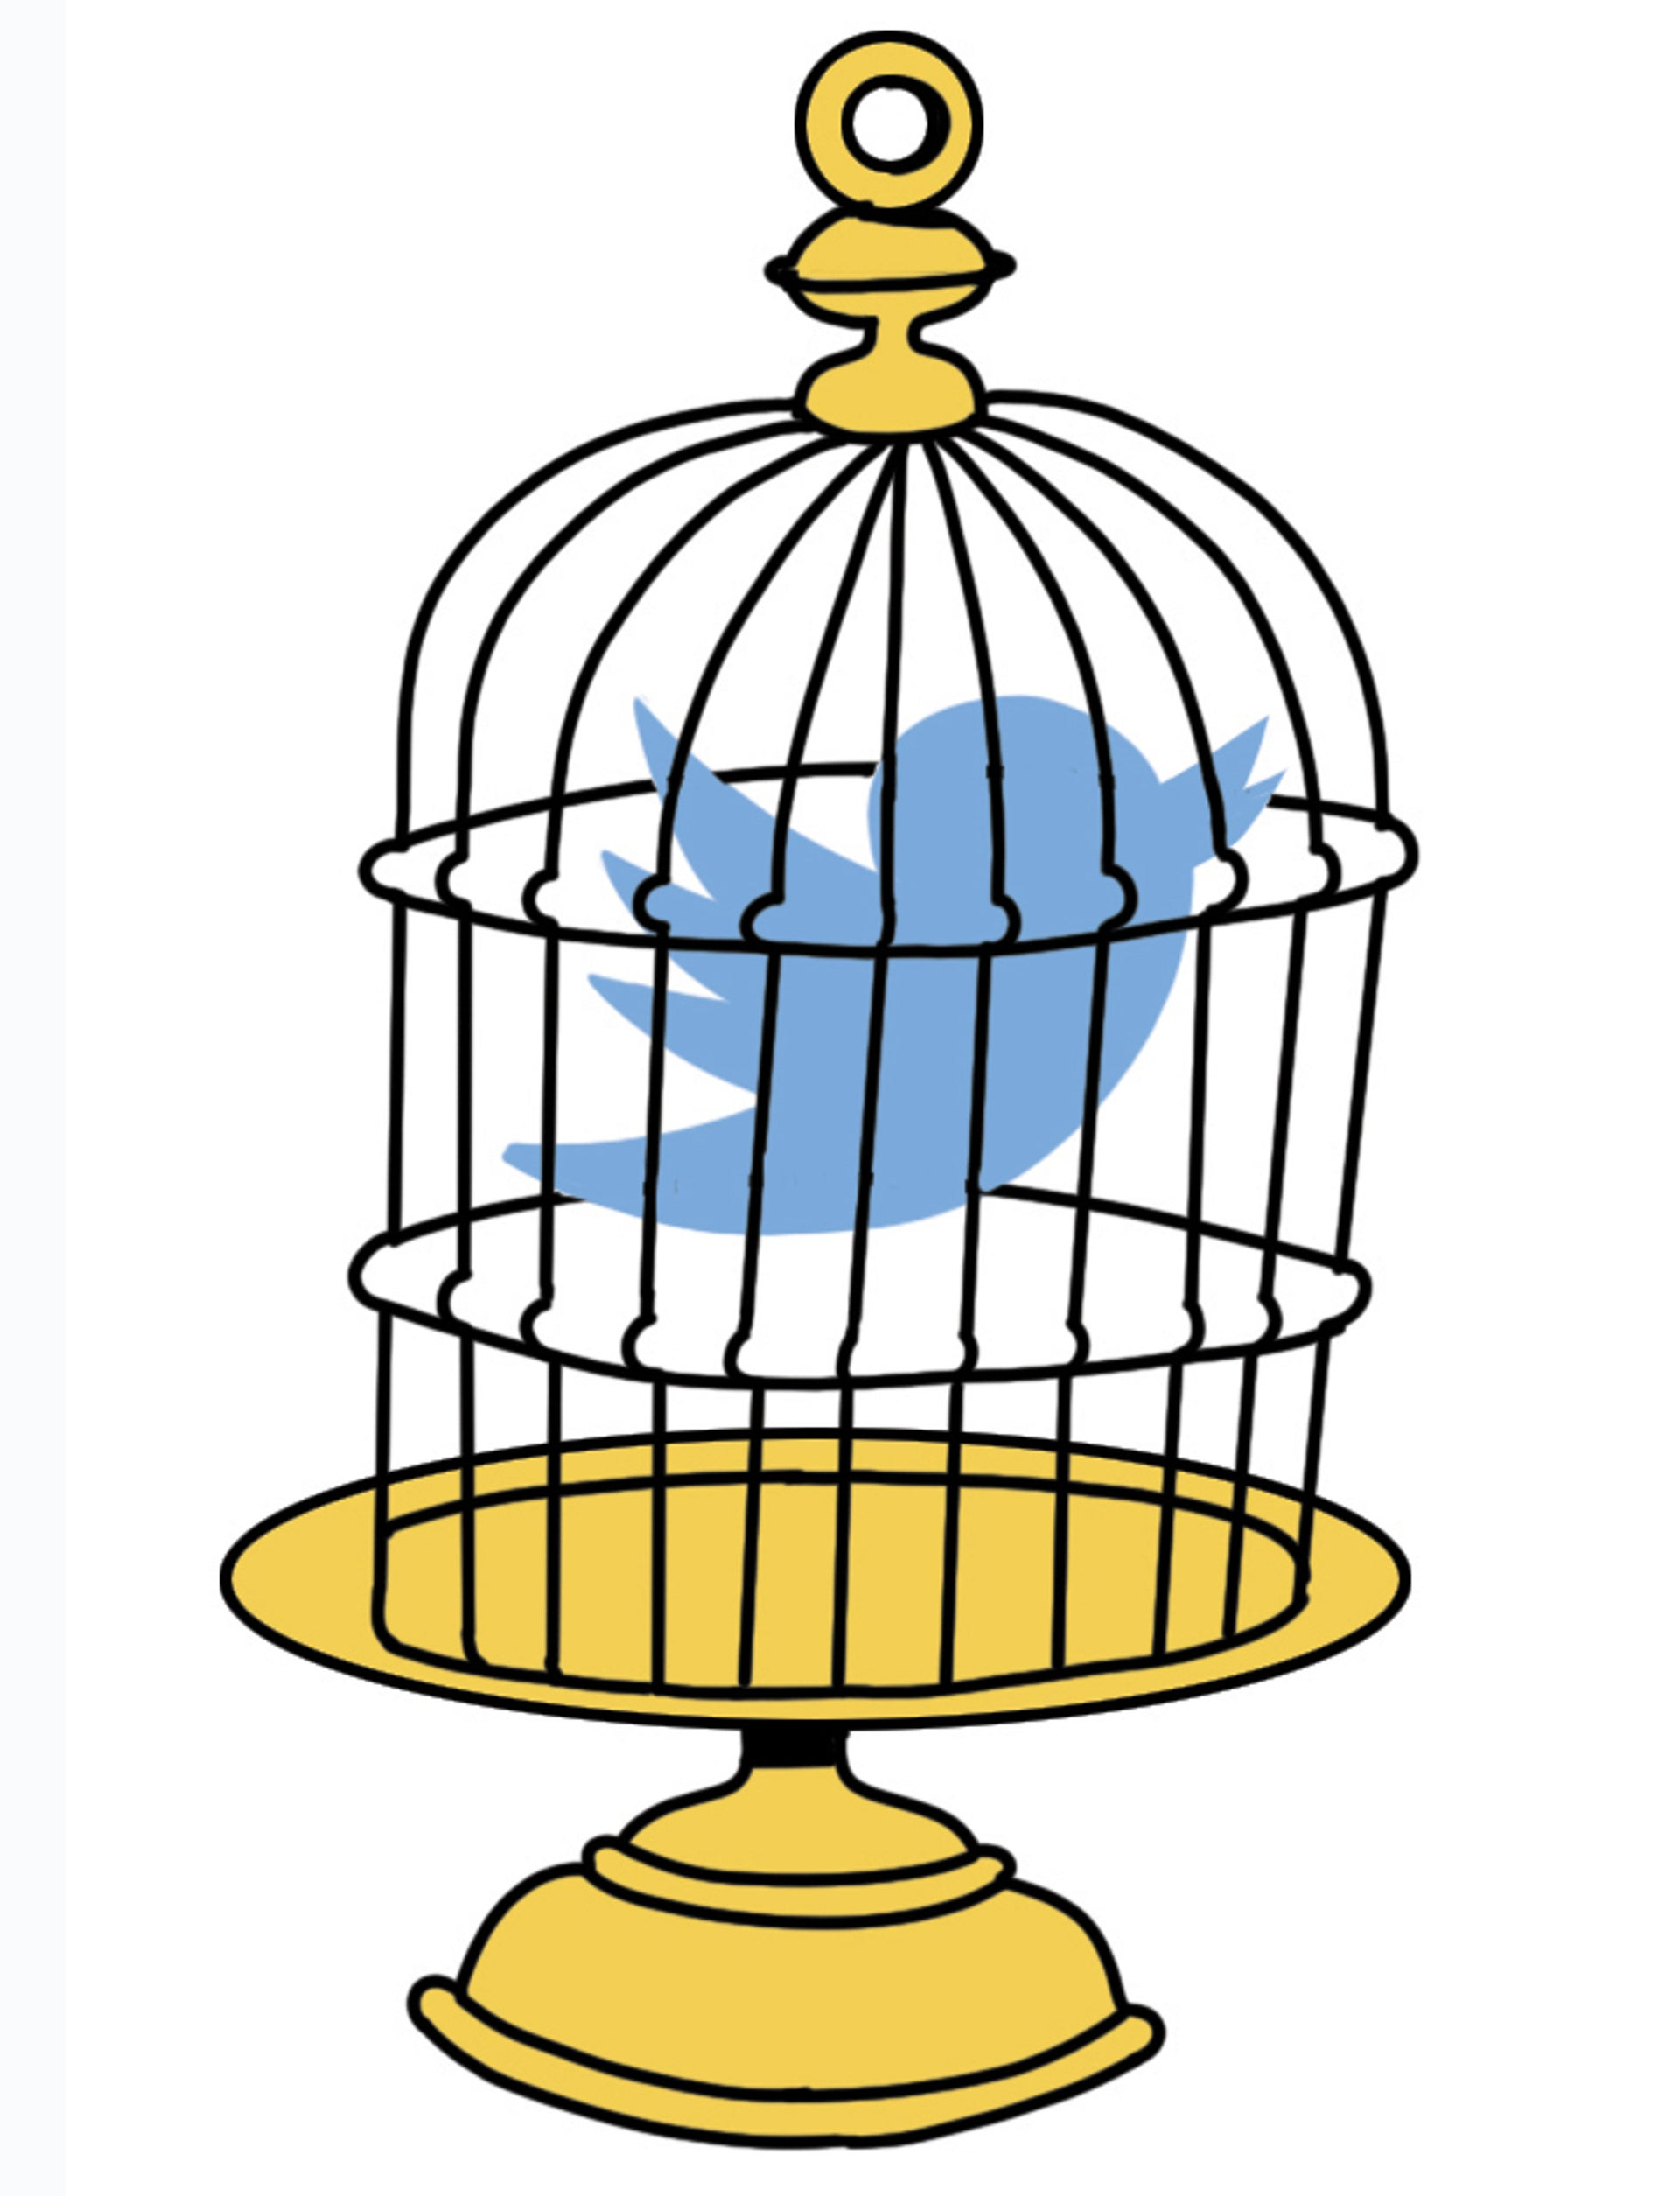 Illustration: The bird-shaped Twitter logo in a cage.